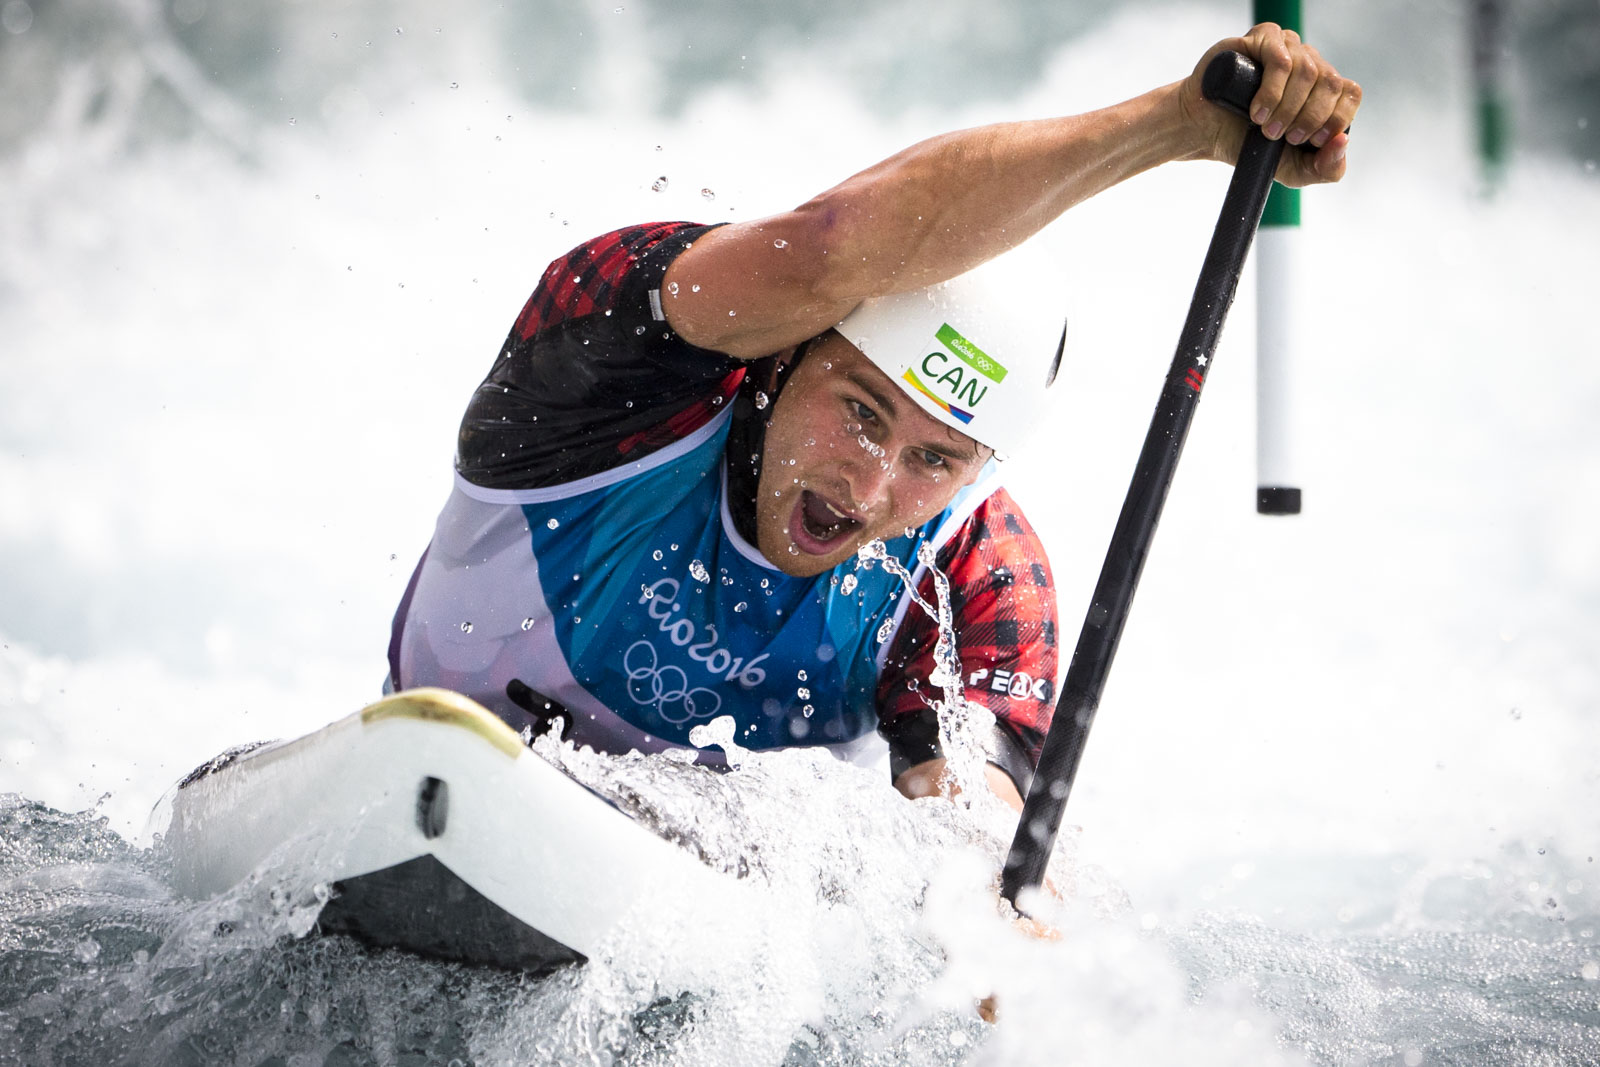 Team Canada's  Cameron Smedley races down the course during the qualifying round of canoe slalom(C1) at White Water Stadium, Deodoro Park,  Rio de Janeiro, Brazil, Sunday August 7, 2016.    COC Photo/David Jackson